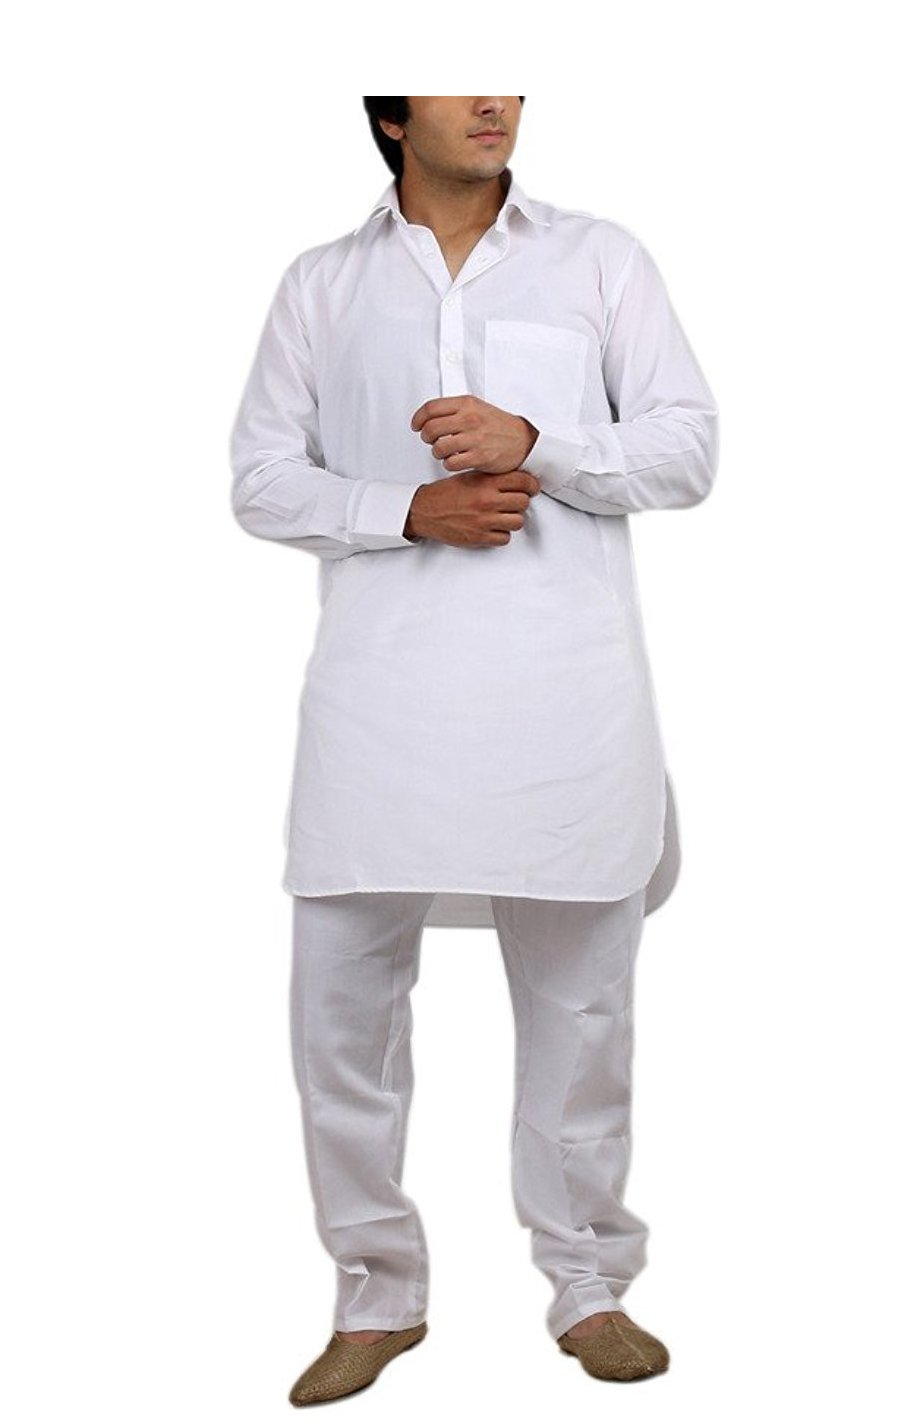 Royal Kurta Big Boy's Cotton Blended Fine Pathani Kurta Pyjama 40 White by Royal Kurta (Image #1)